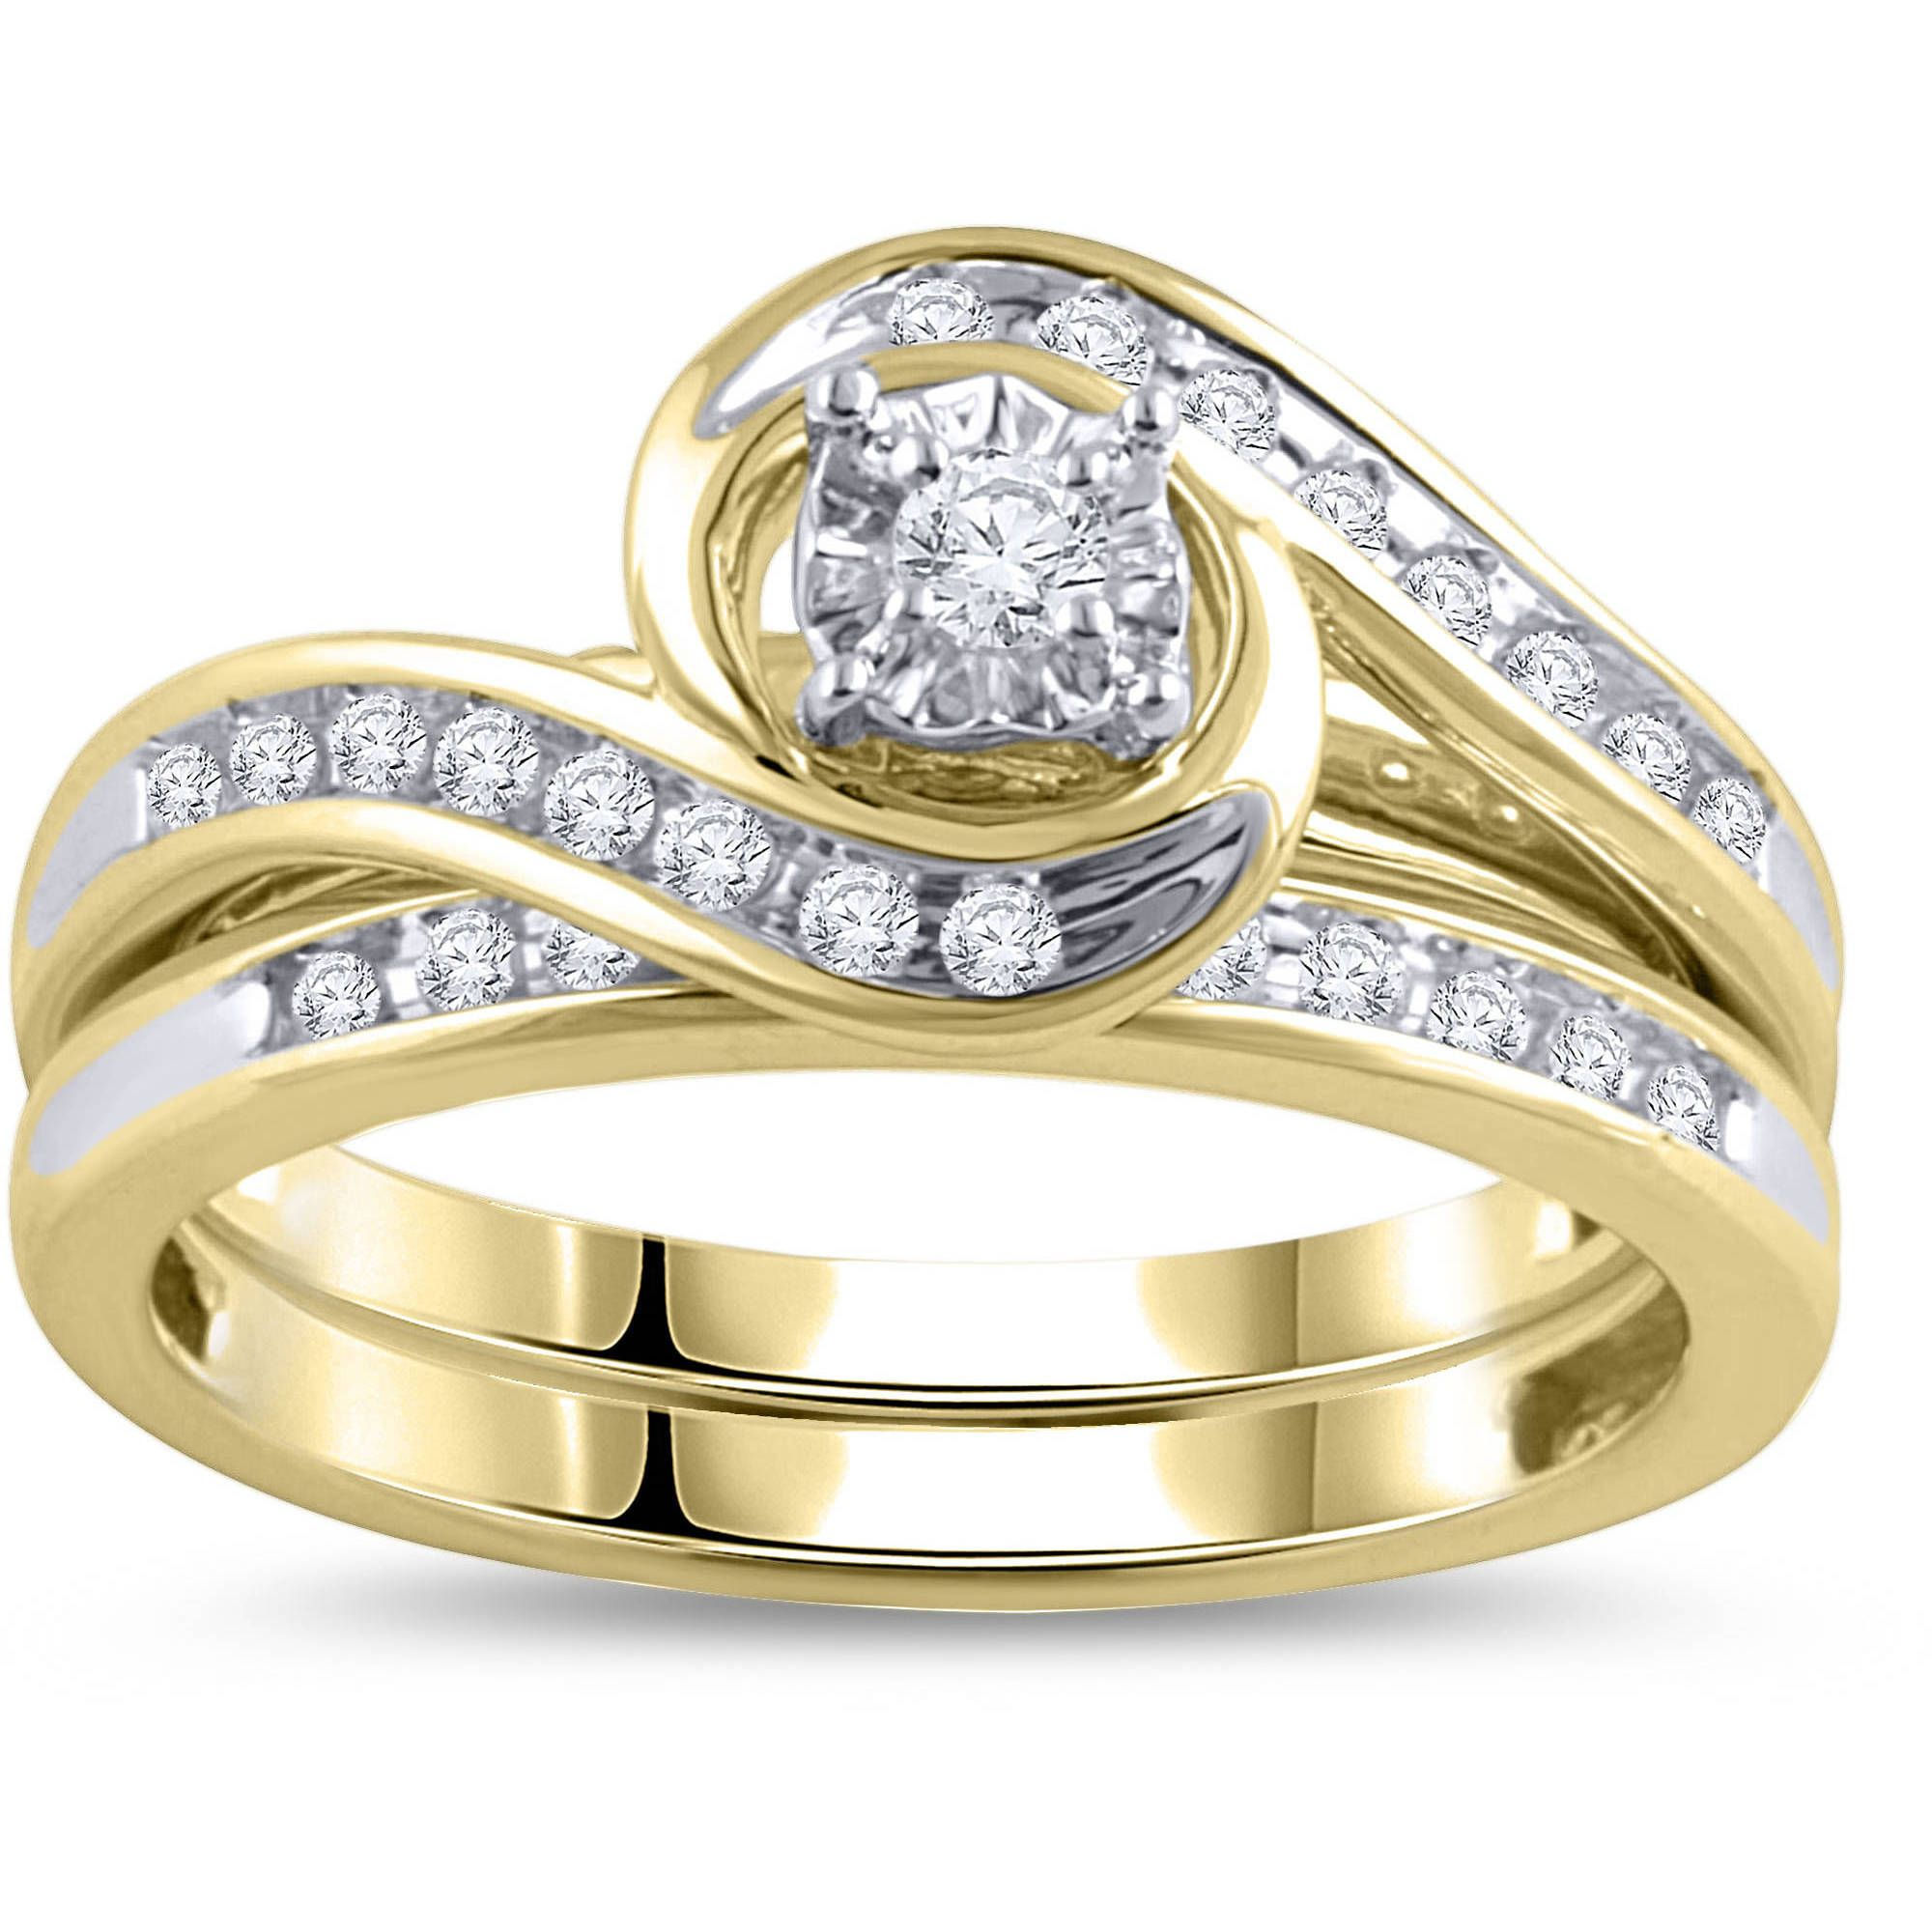 promise wedding ctw gold rings pure pictures com rcgxlat engagement diamond of walmart woman